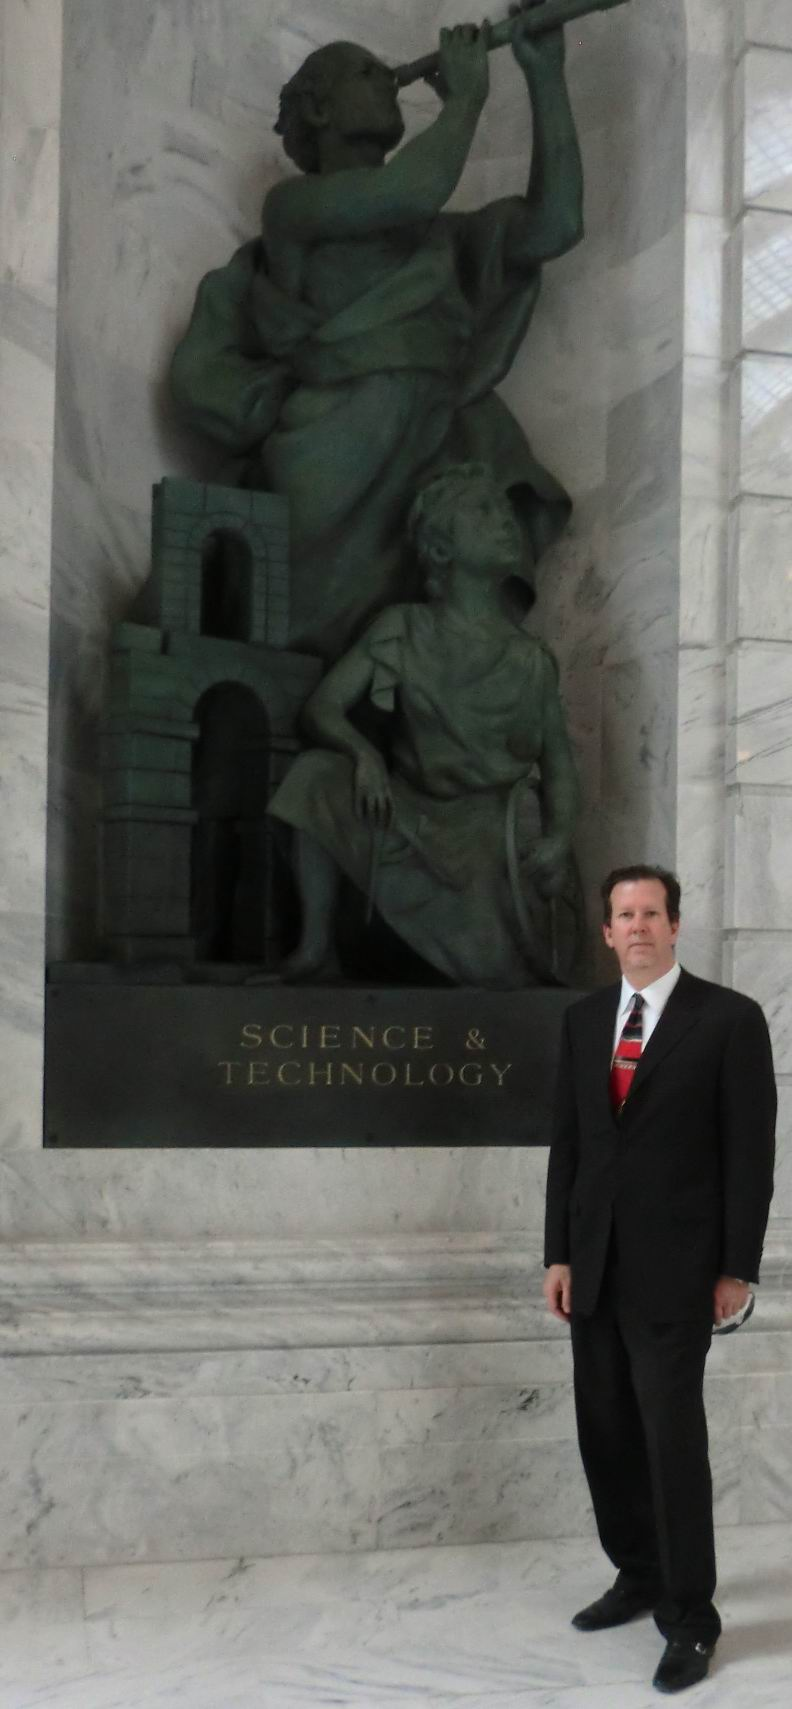 Paul C. Oestreich at the Utah State Capitol, Science and Technology Sculpture